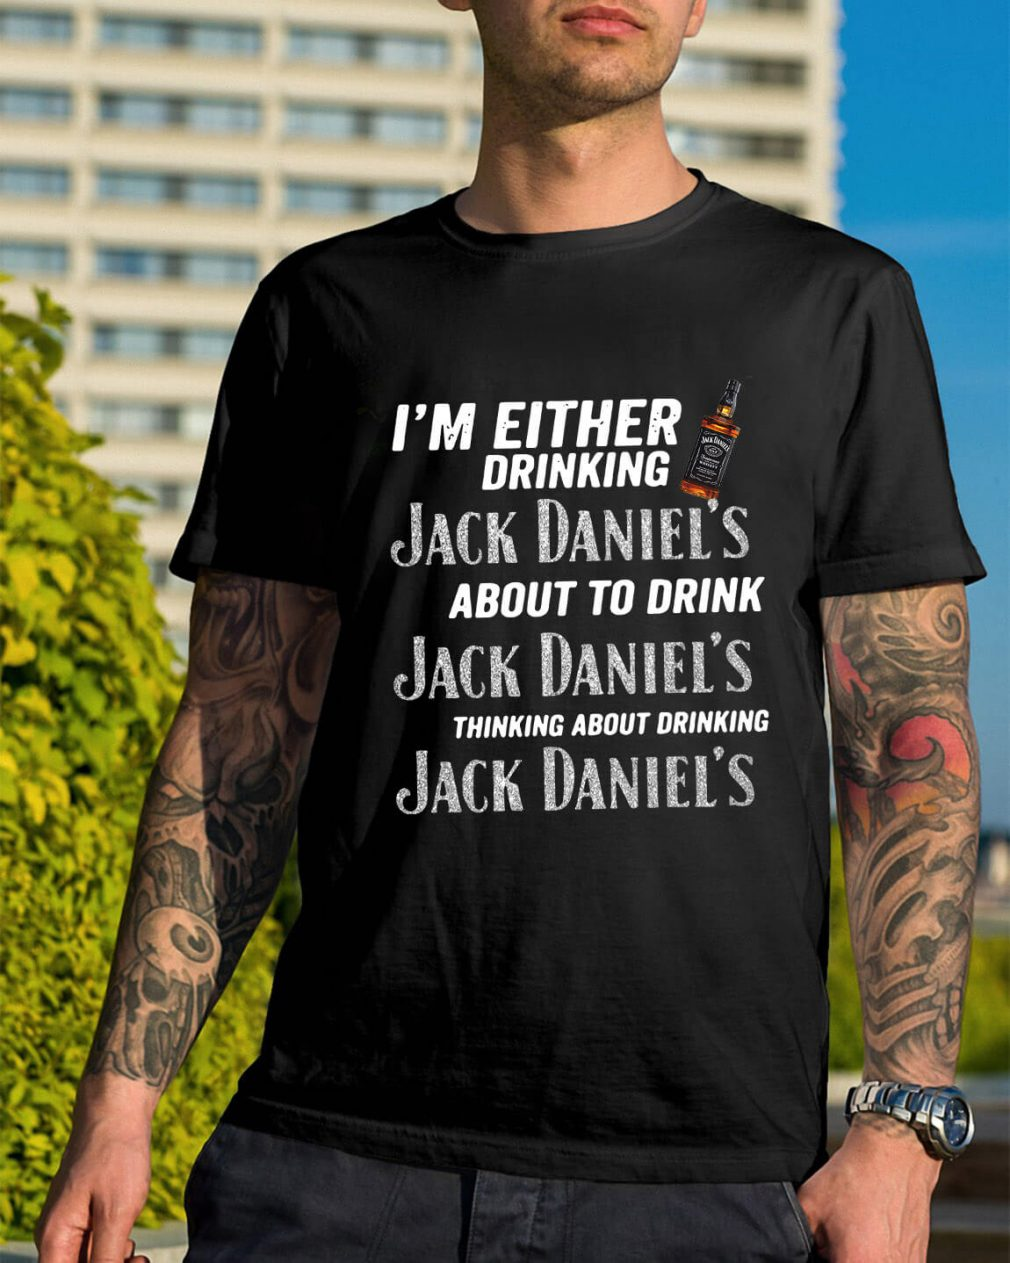 I'm either drinking Jack Daniel's about to drink Jack Daniel's shirt